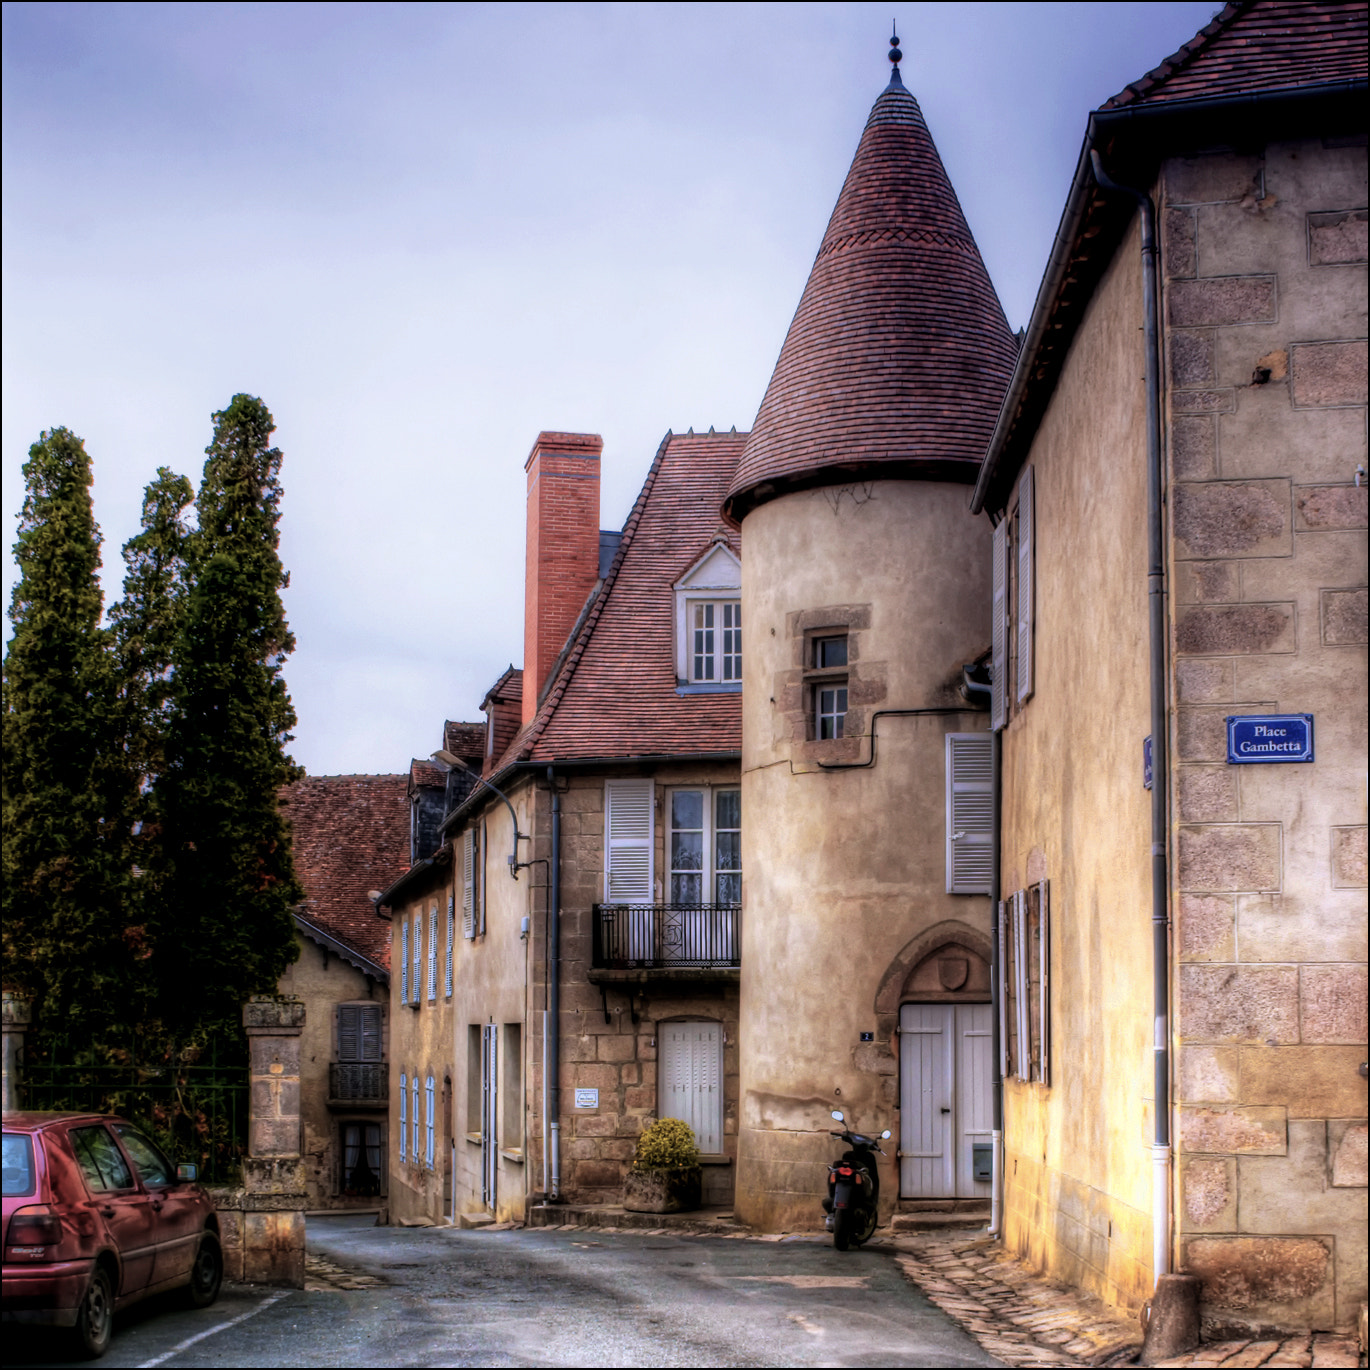 Photograph Place Gambetta by RobN 185 on 500px